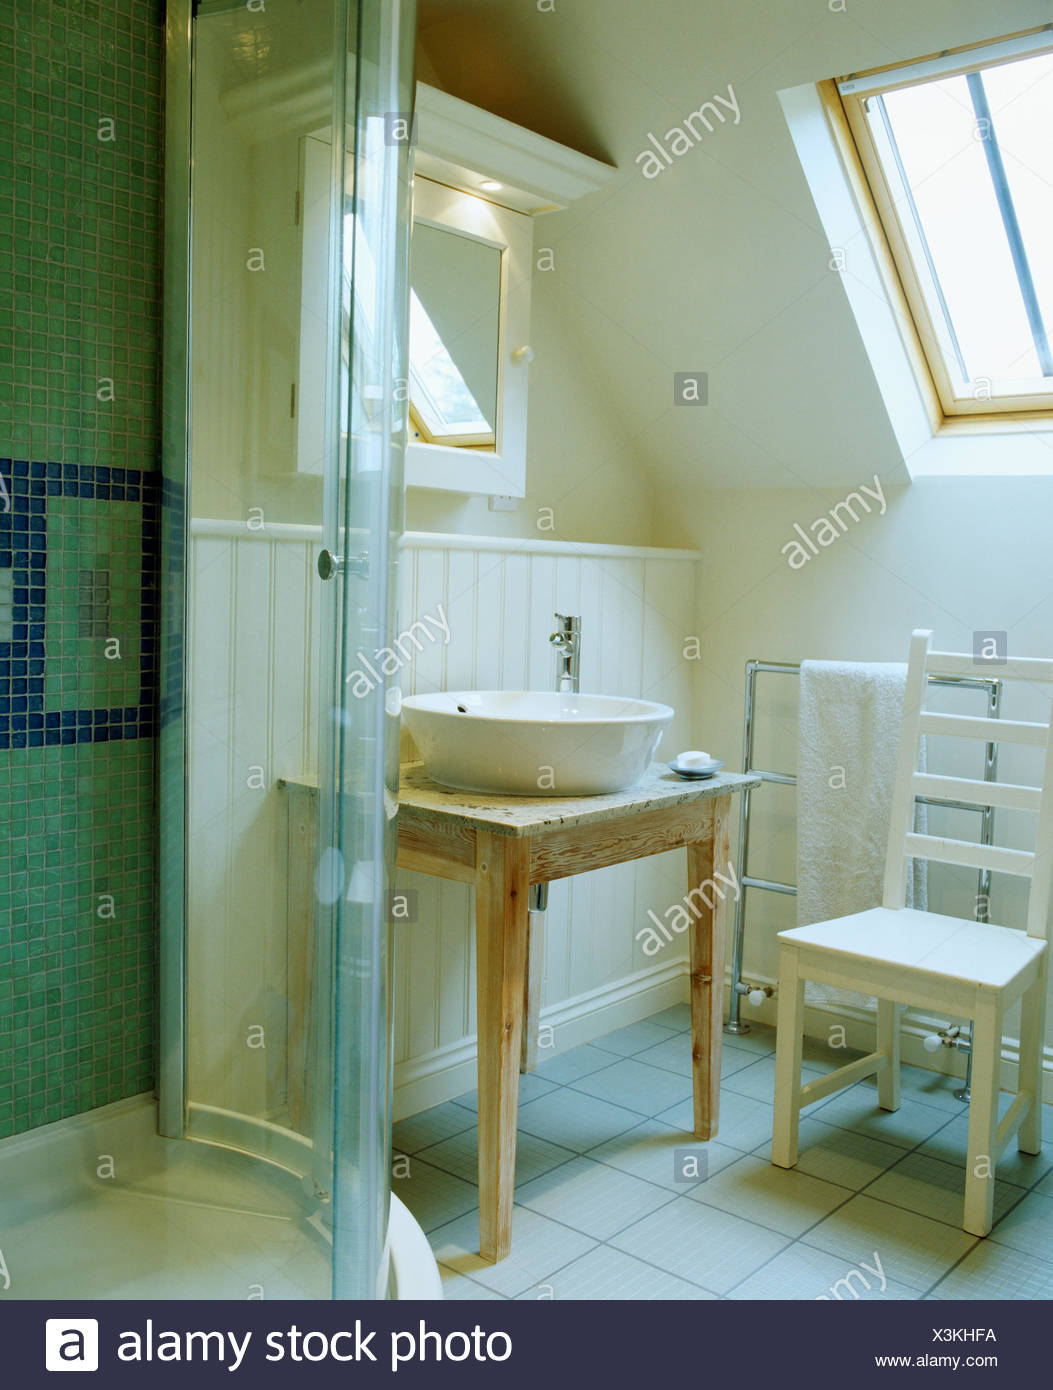 Curved Shower Stock Photos & Curved Shower Stock Images - Alamy